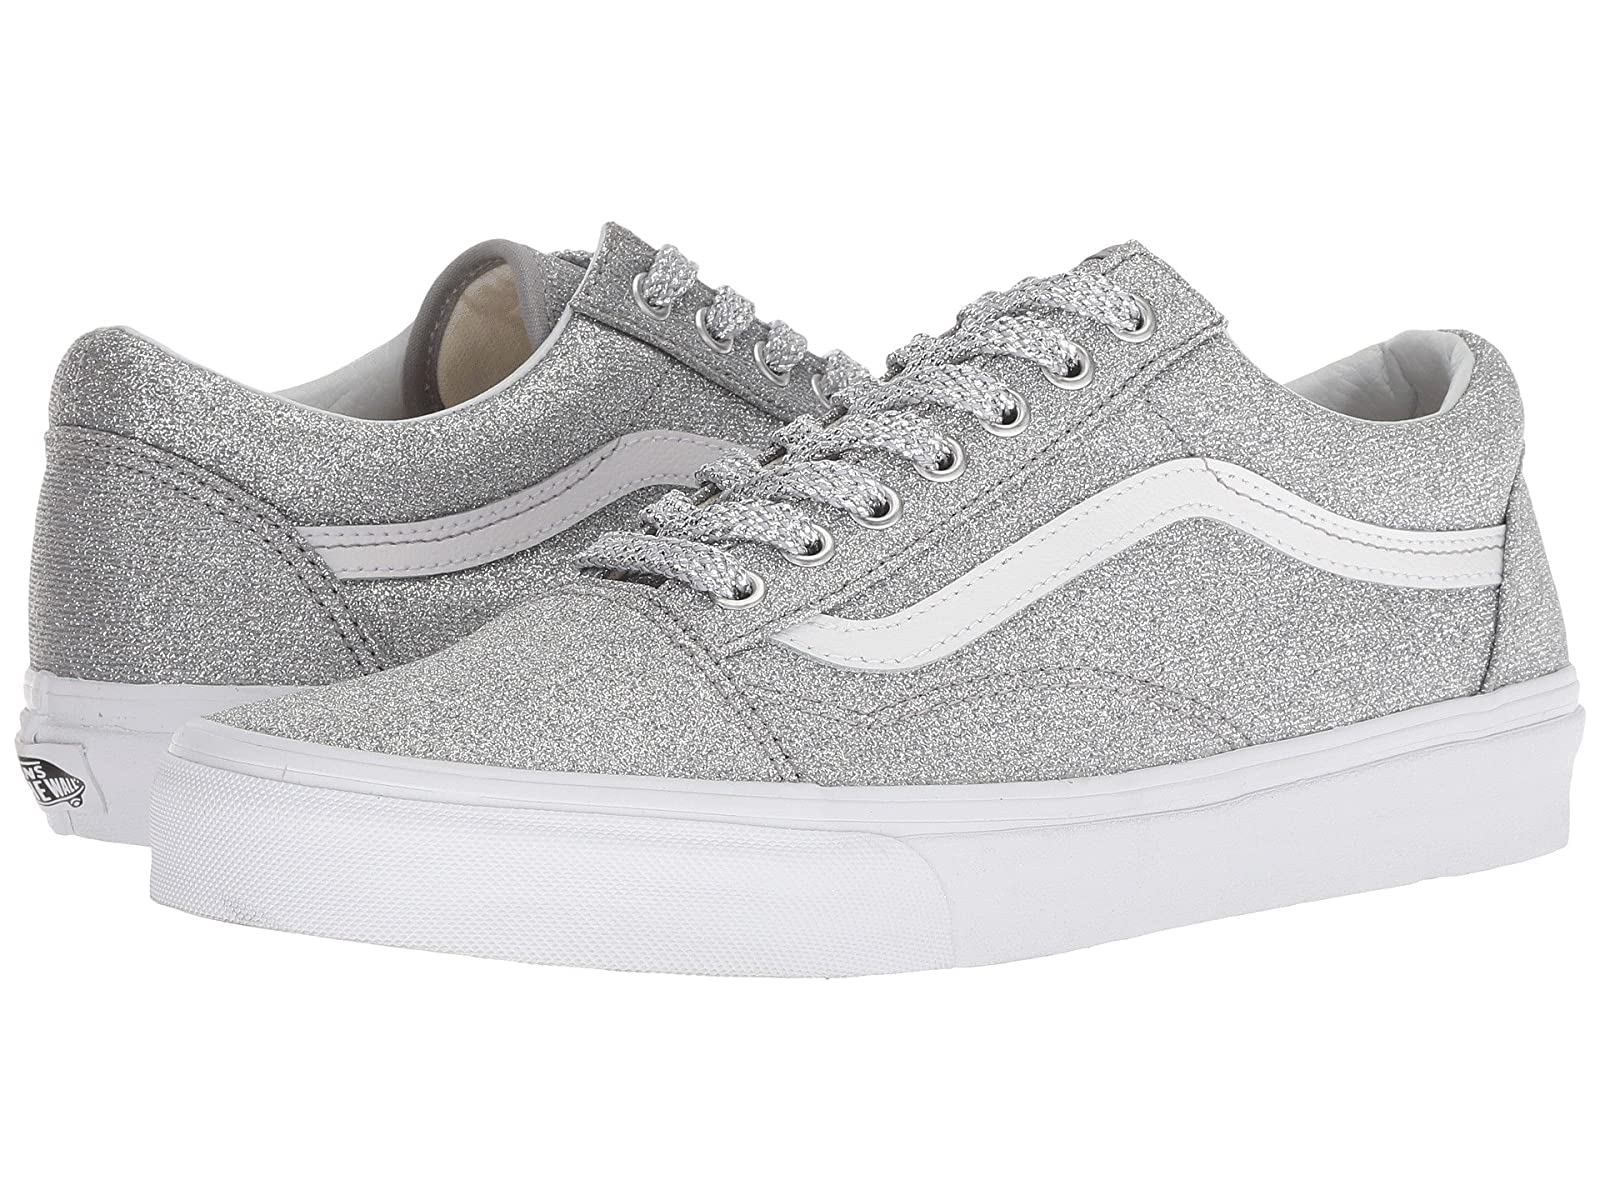 Vans Old Skool™Atmospheric grades have affordable shoes